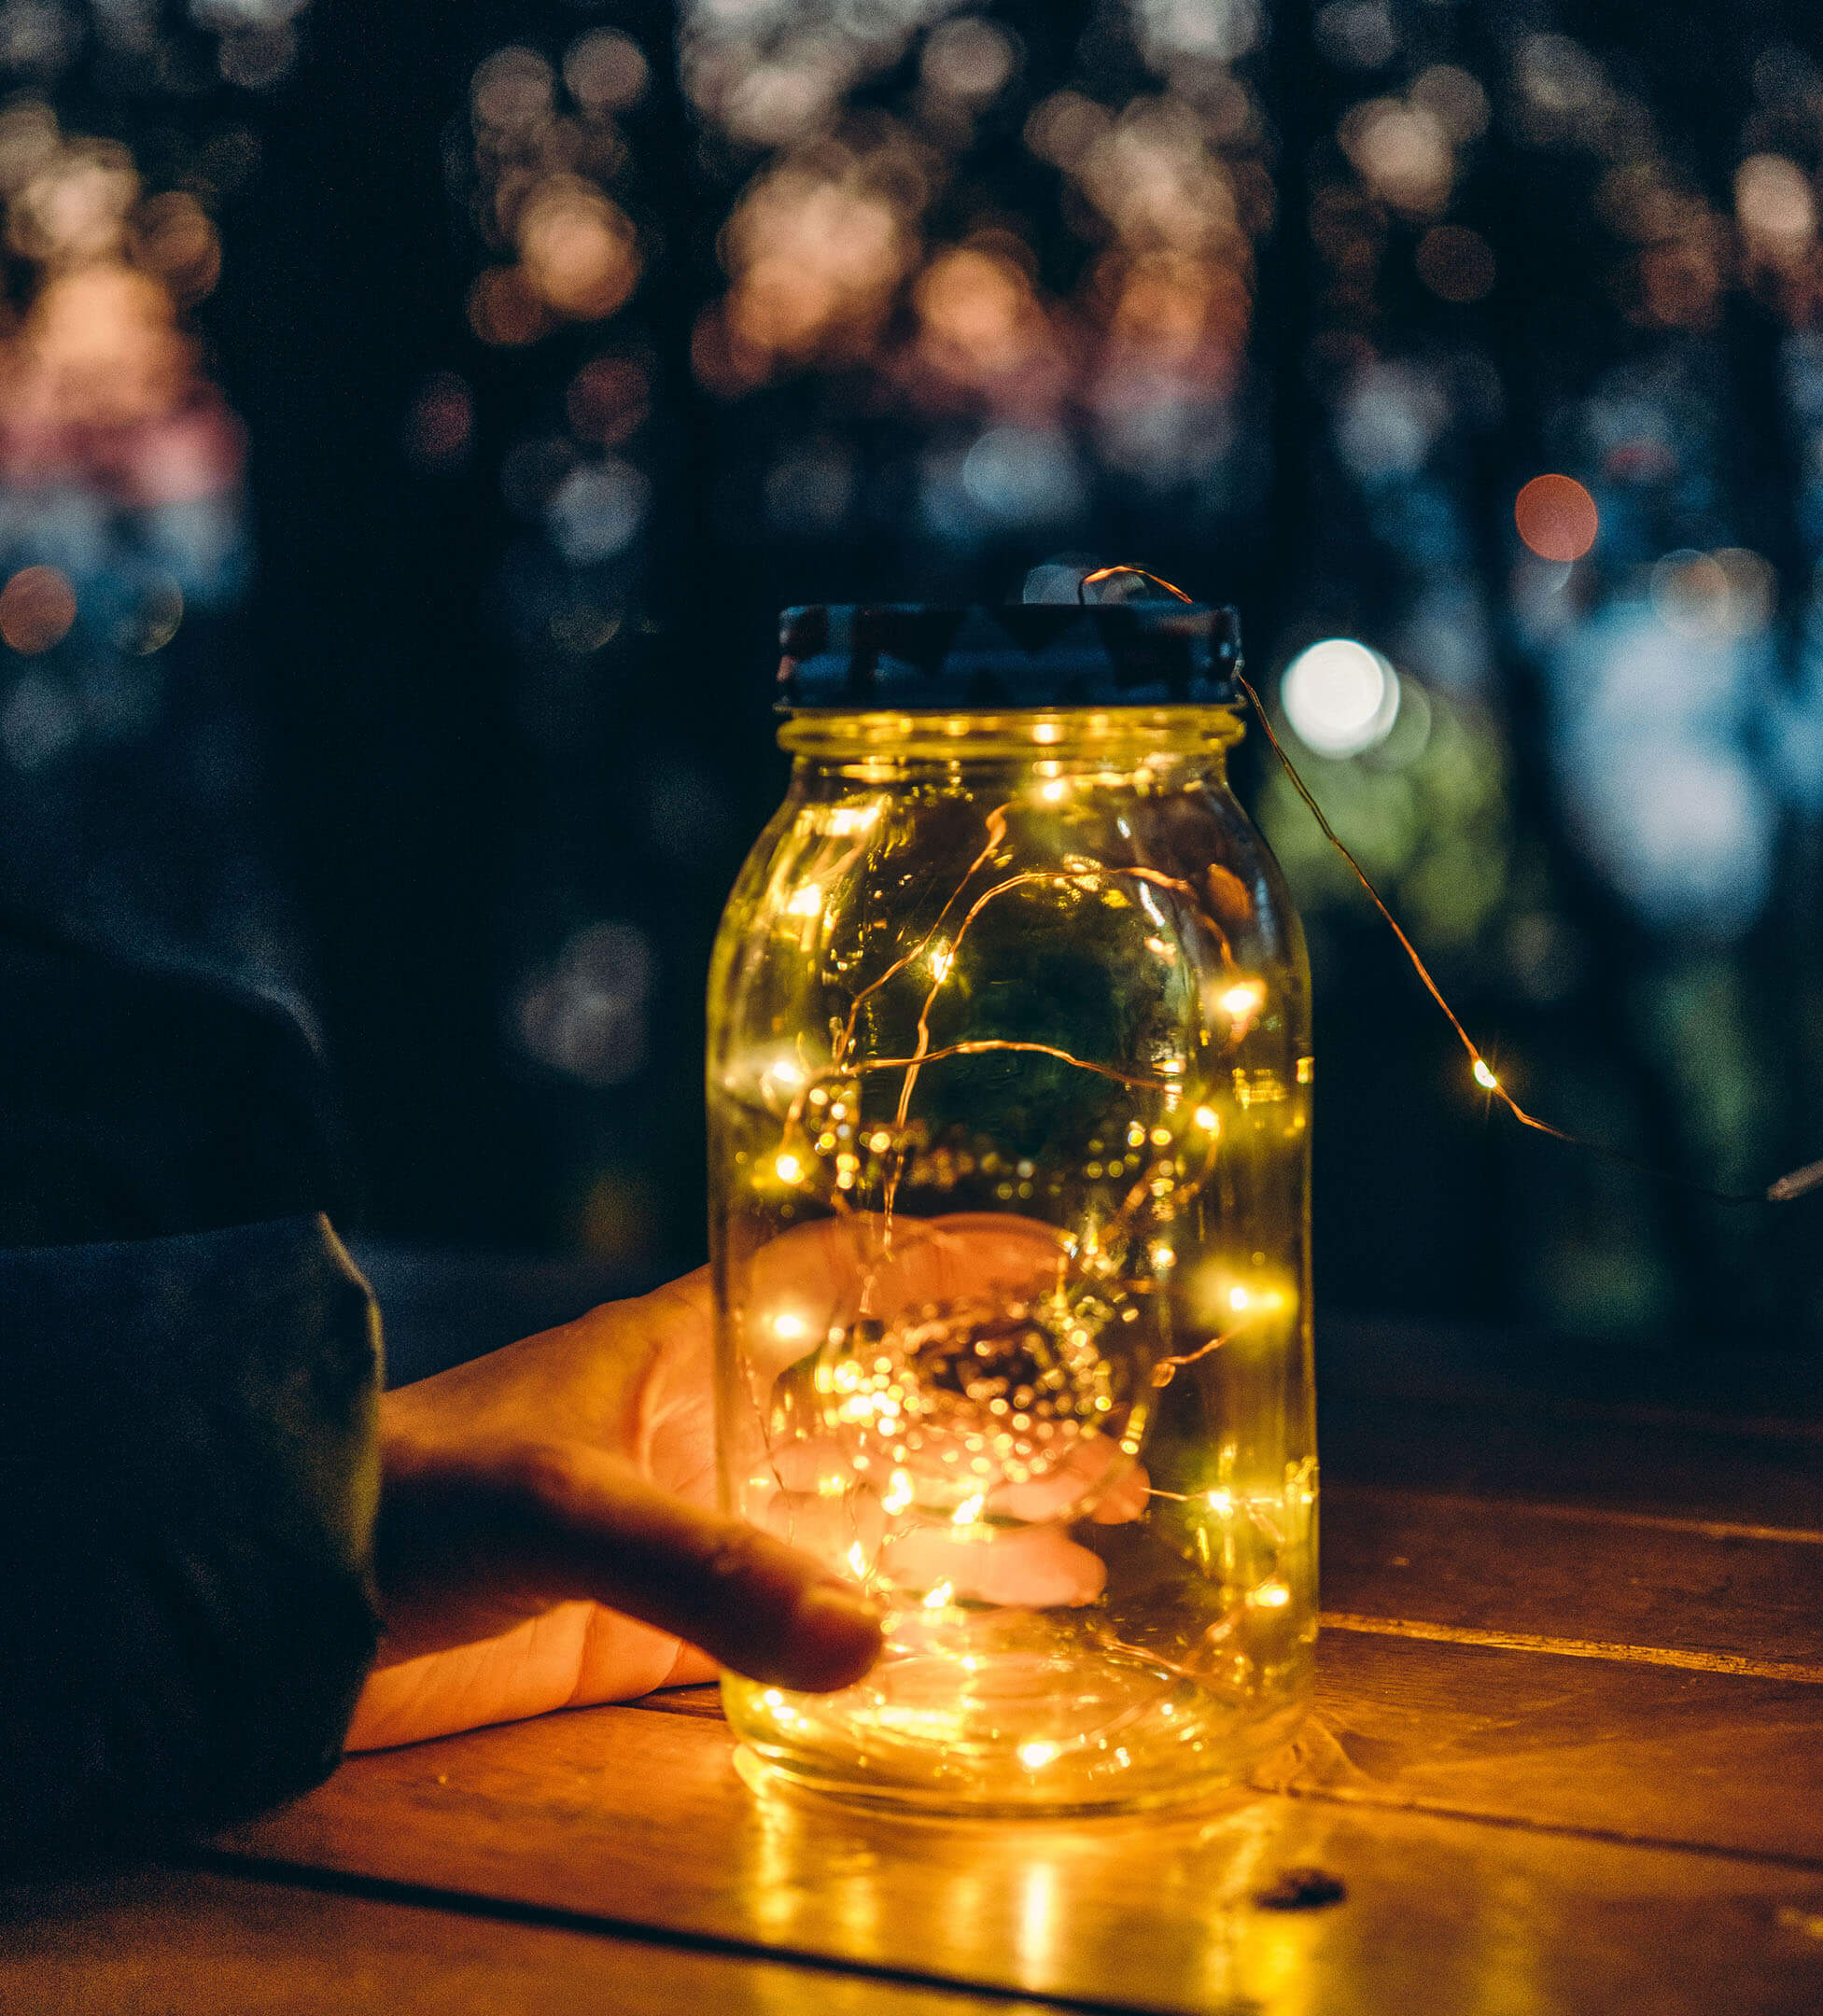 Handheld mason jar lit with led lights creates flawless & consistent social presence as our strategy essential for business